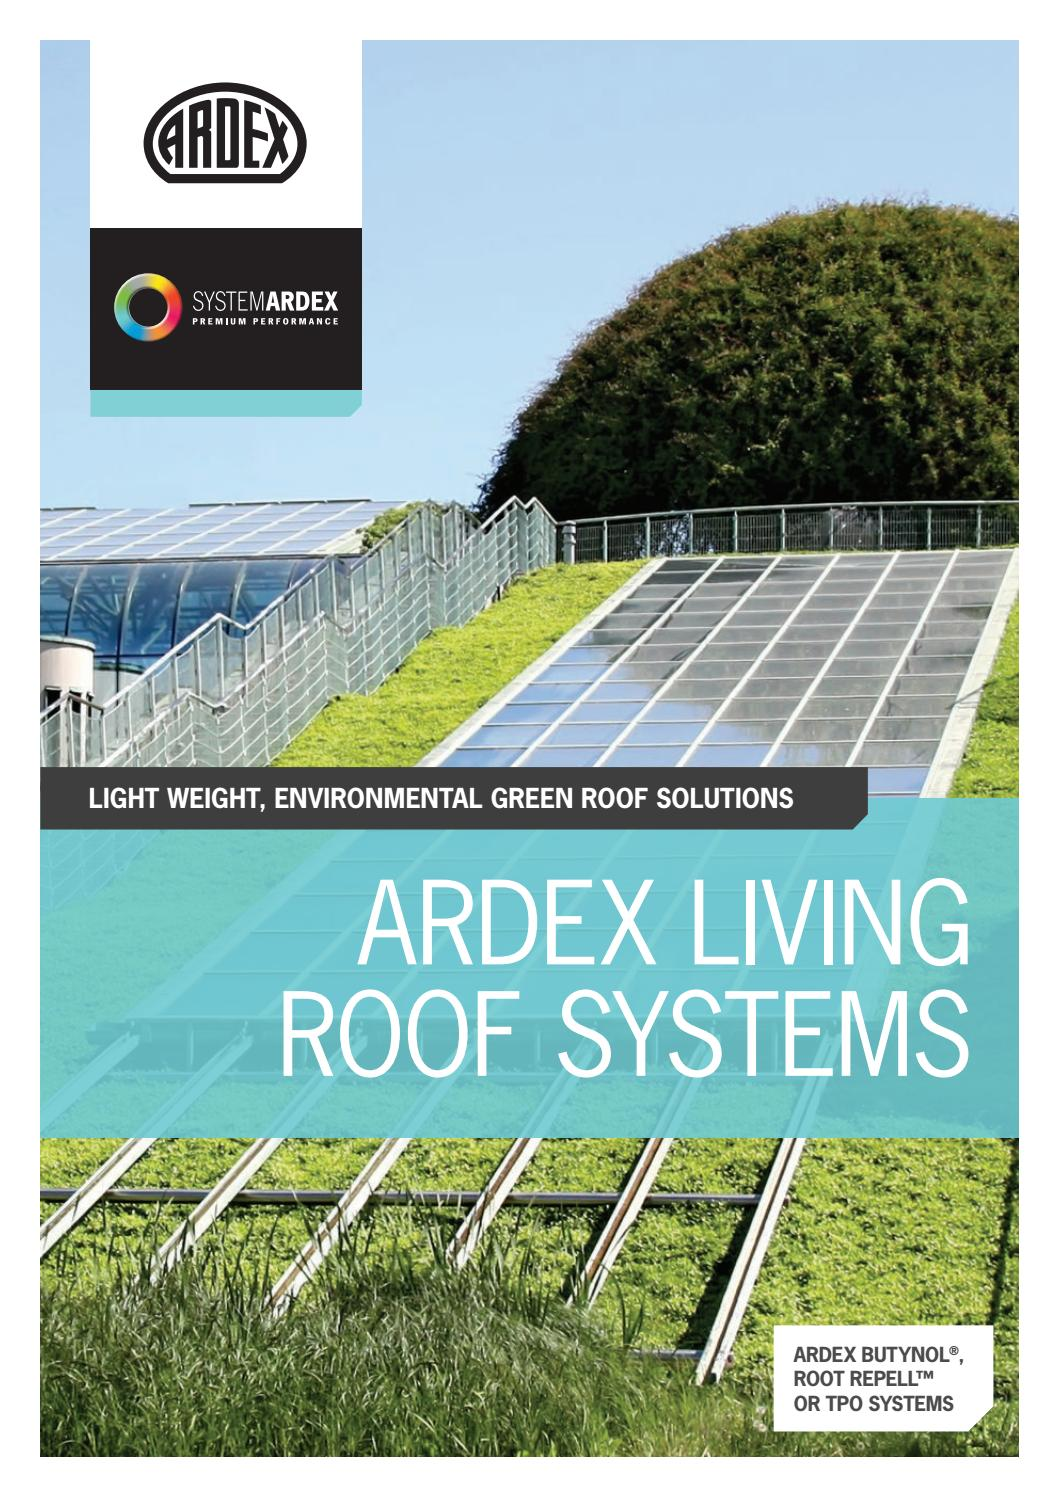 ARDEX Green Roof Solutions By ARDEX Australia   Issuu